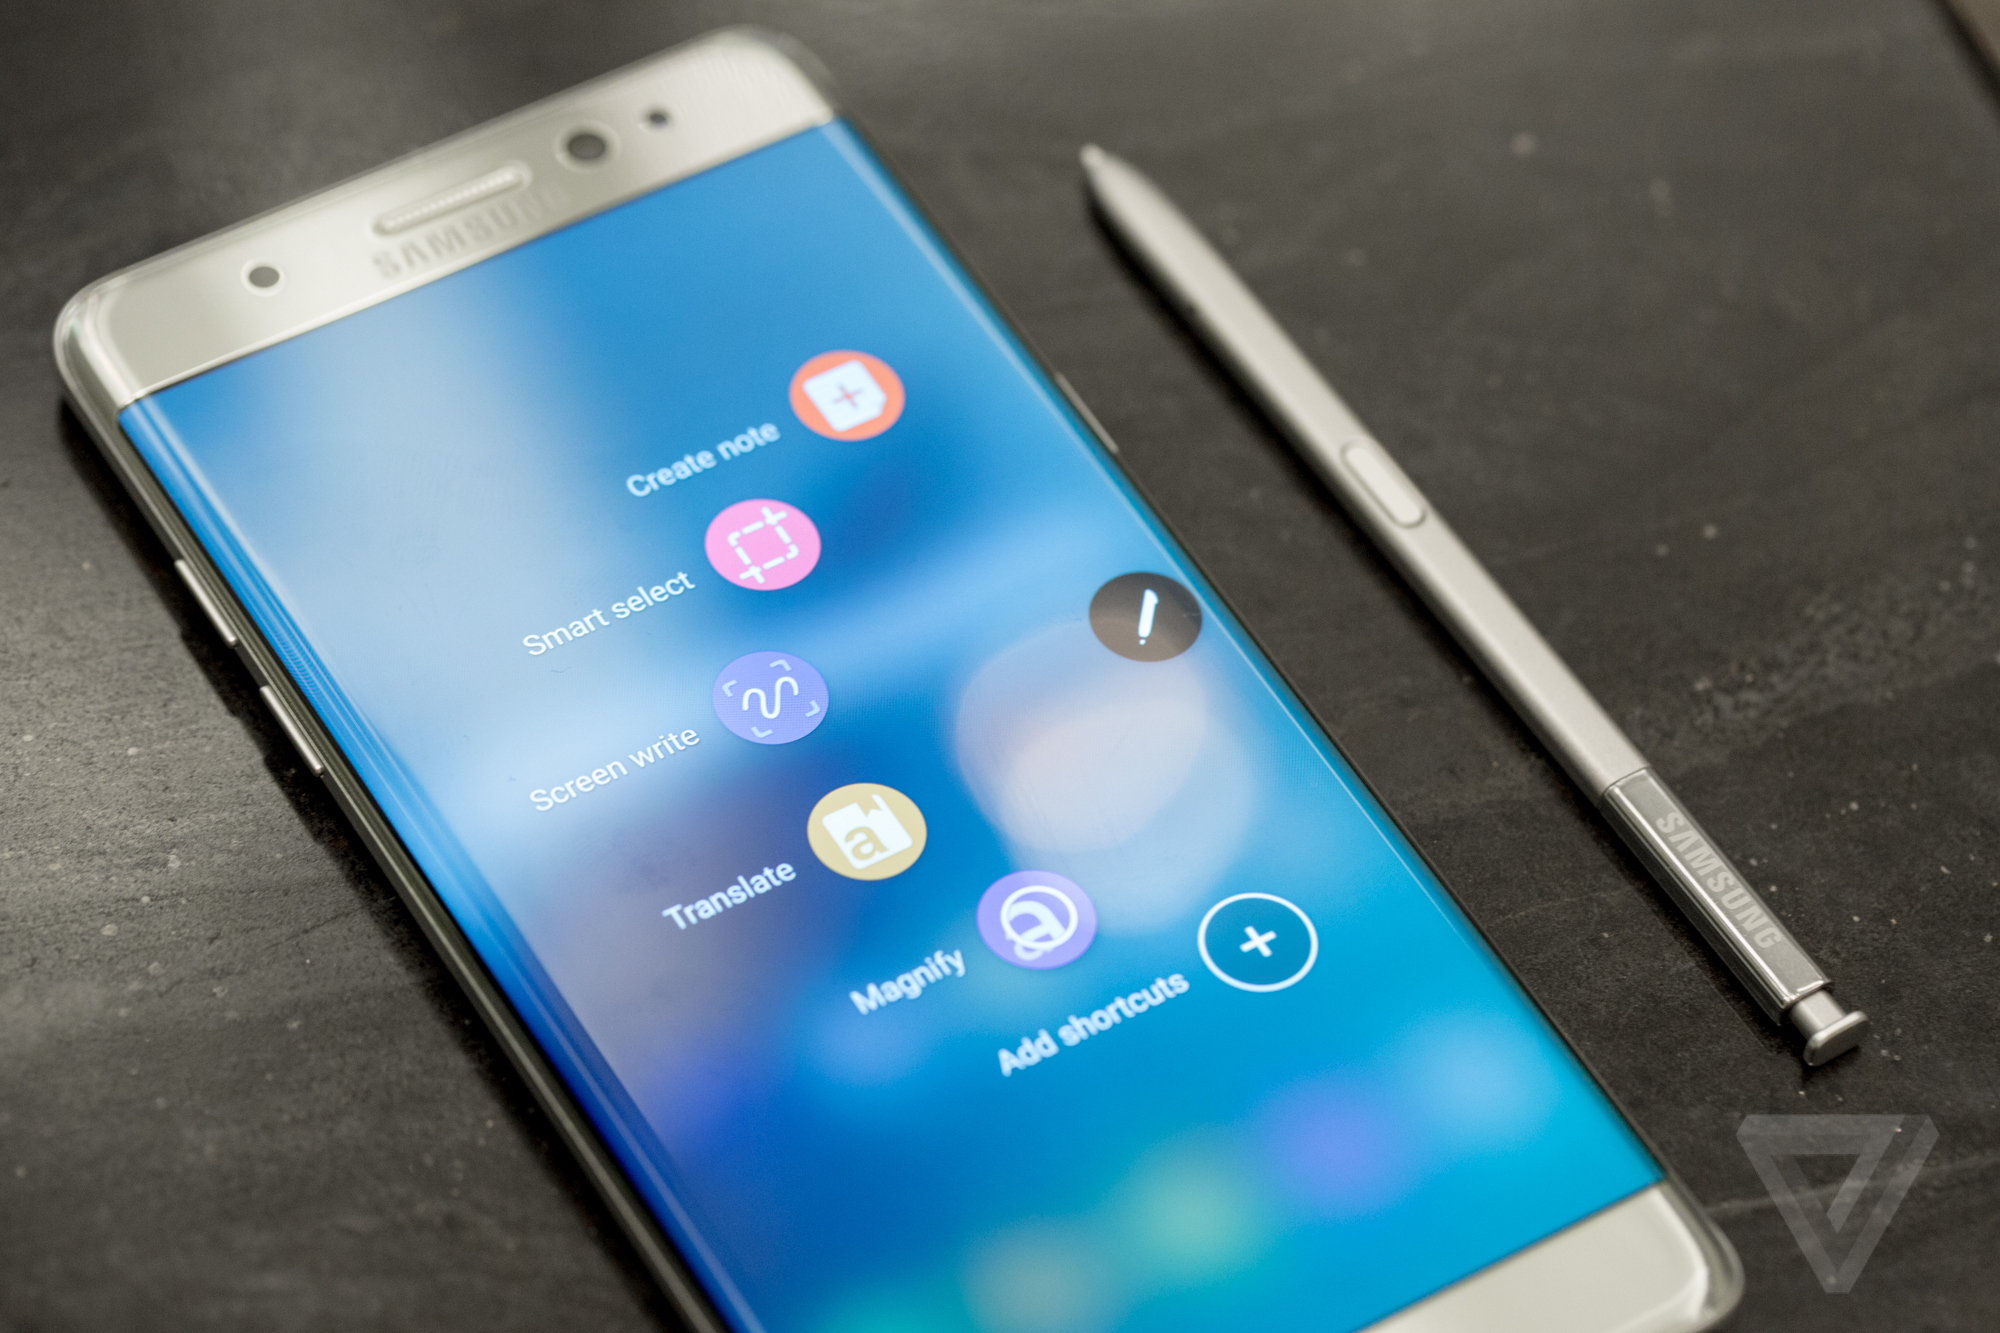 samsung galaxy note 7 arrives august 19th with curved